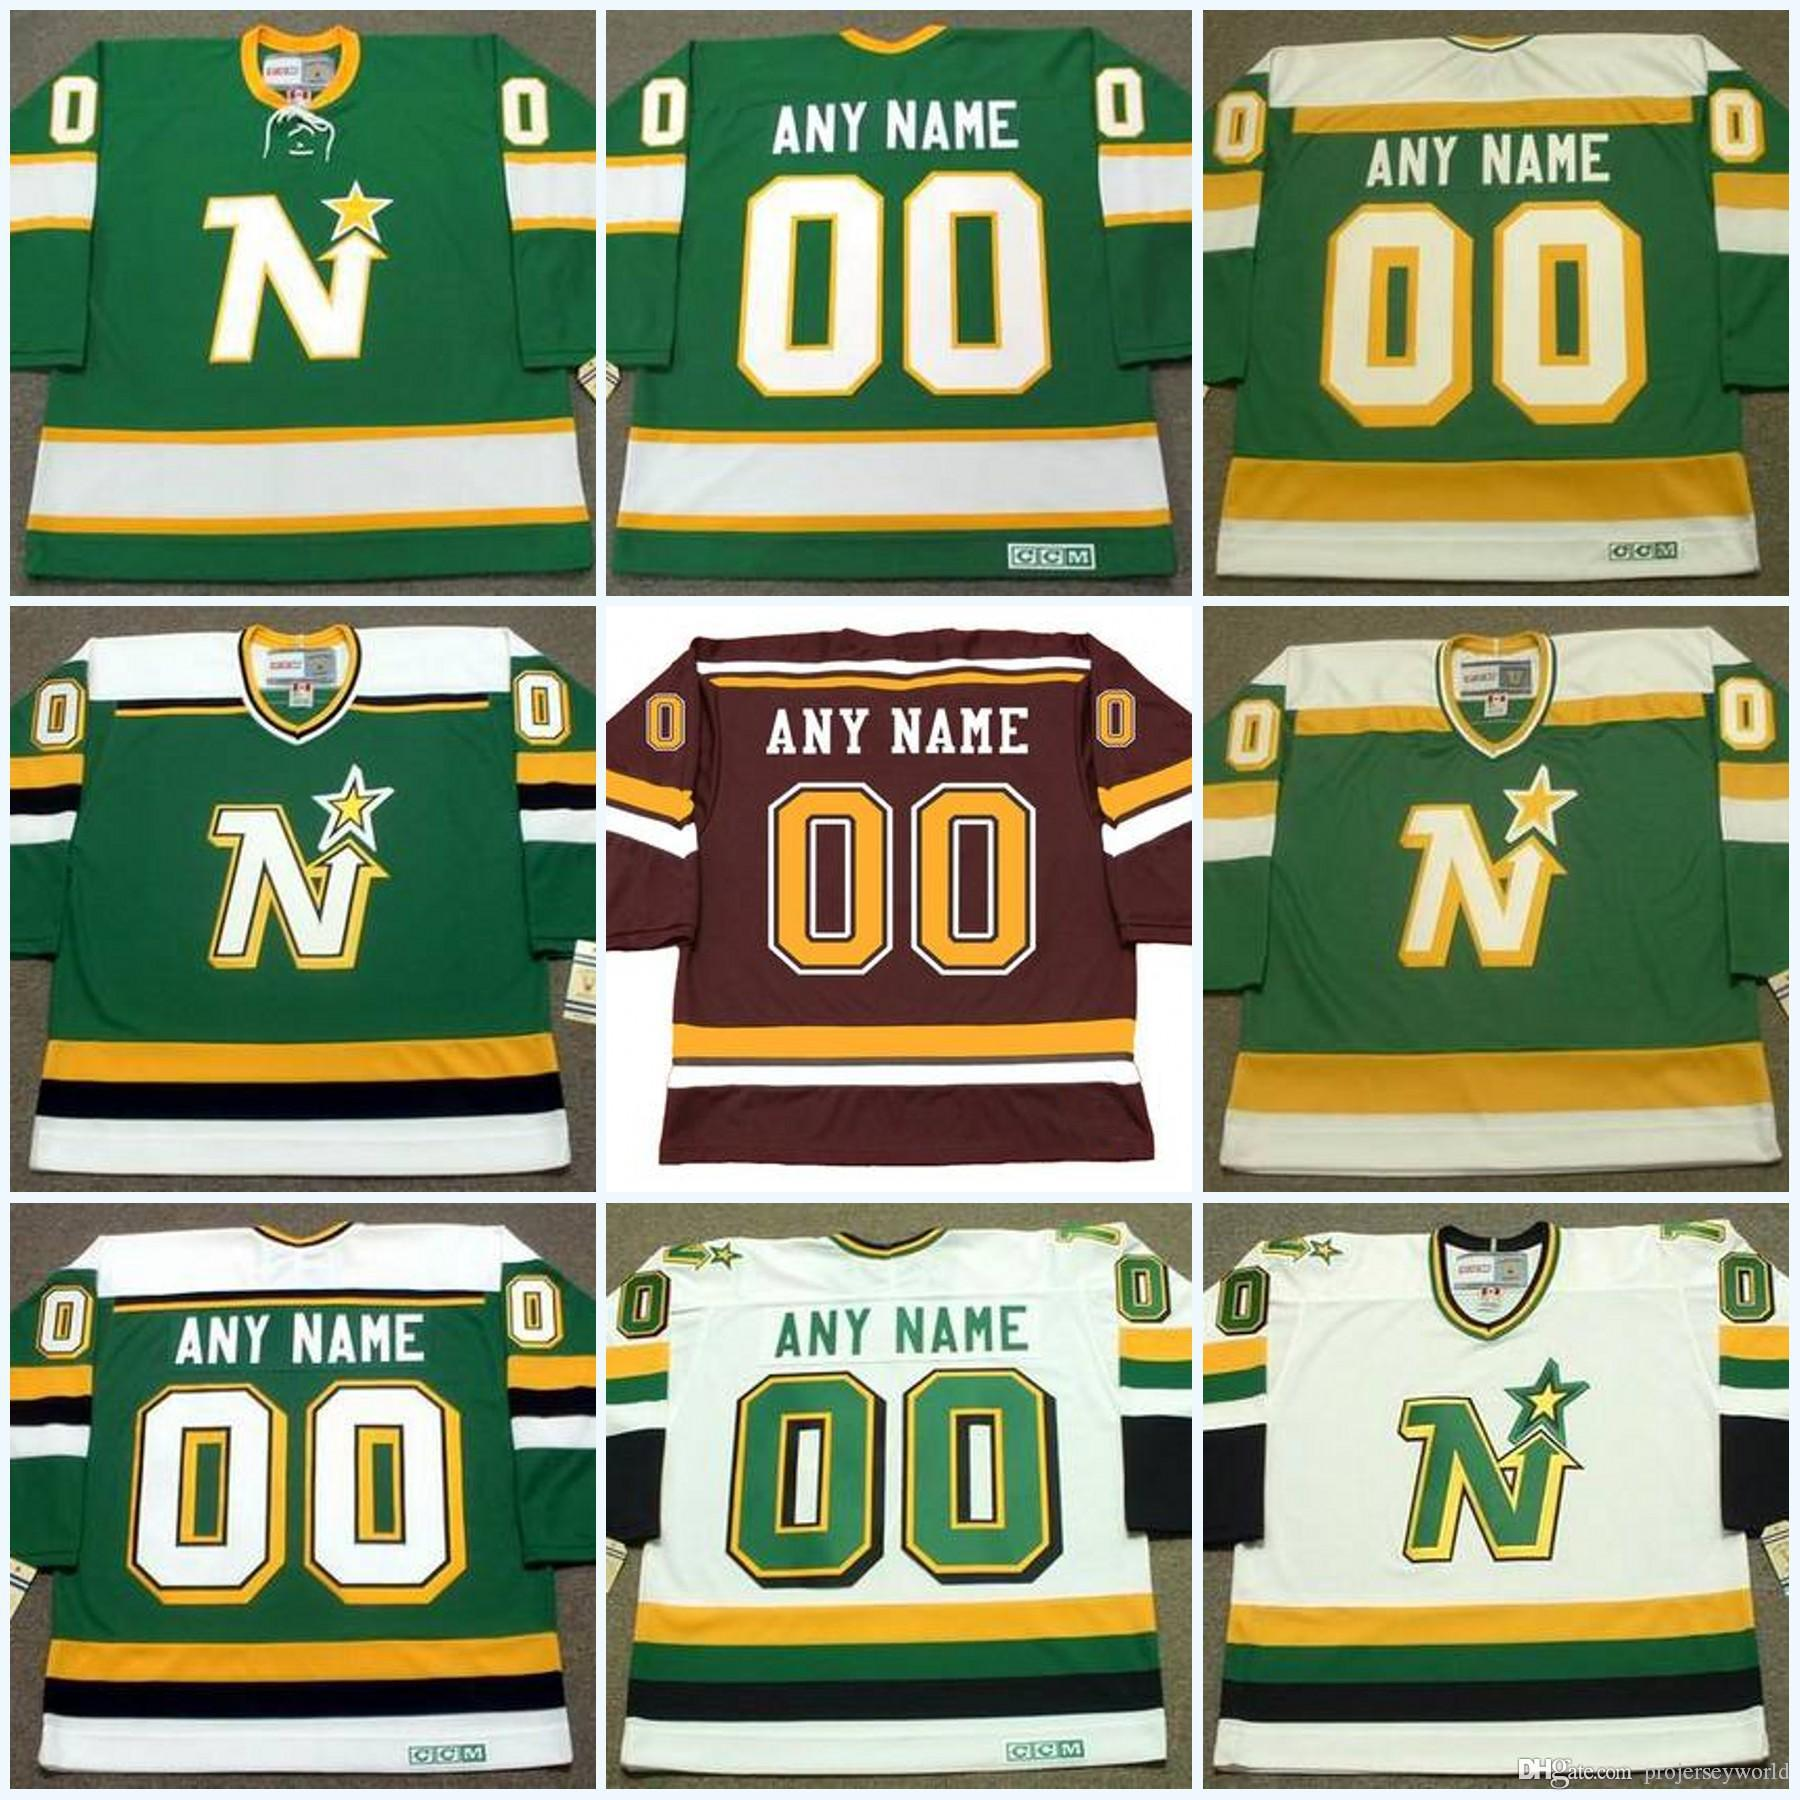 2019 Minnesota North Stars Jersey Customized With Any Name   Number Vintage  Hockey Jerseys Personalized All Stiched From Projerseyworld b55bdadbbcd